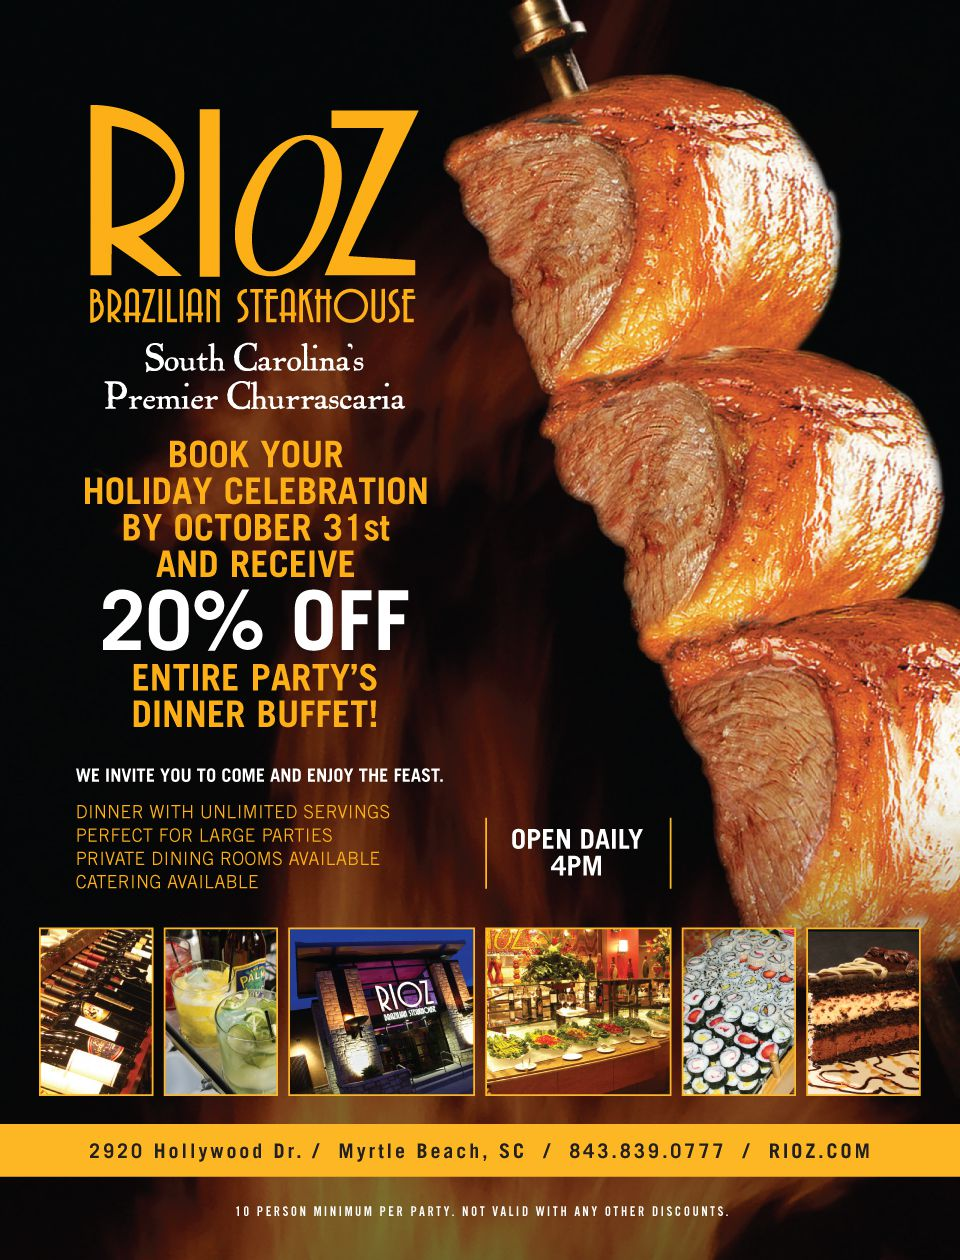 (TB400)Rioz Book Holiday Celebration.jpg